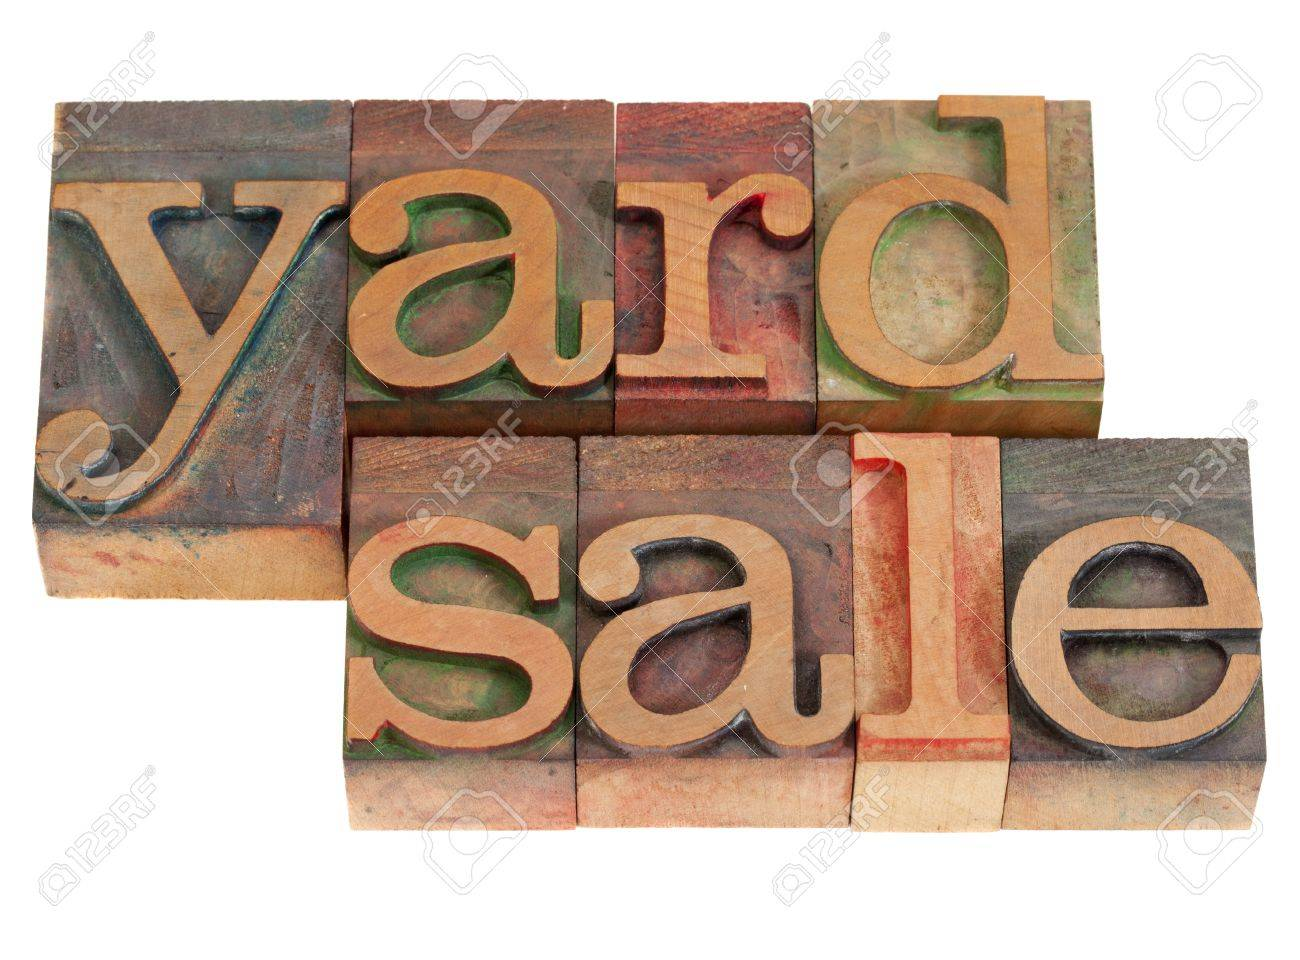 yard sale words in vintage wood letterpress printing blocks, stained by color inks, isolated on white Stock Photo - 9063448